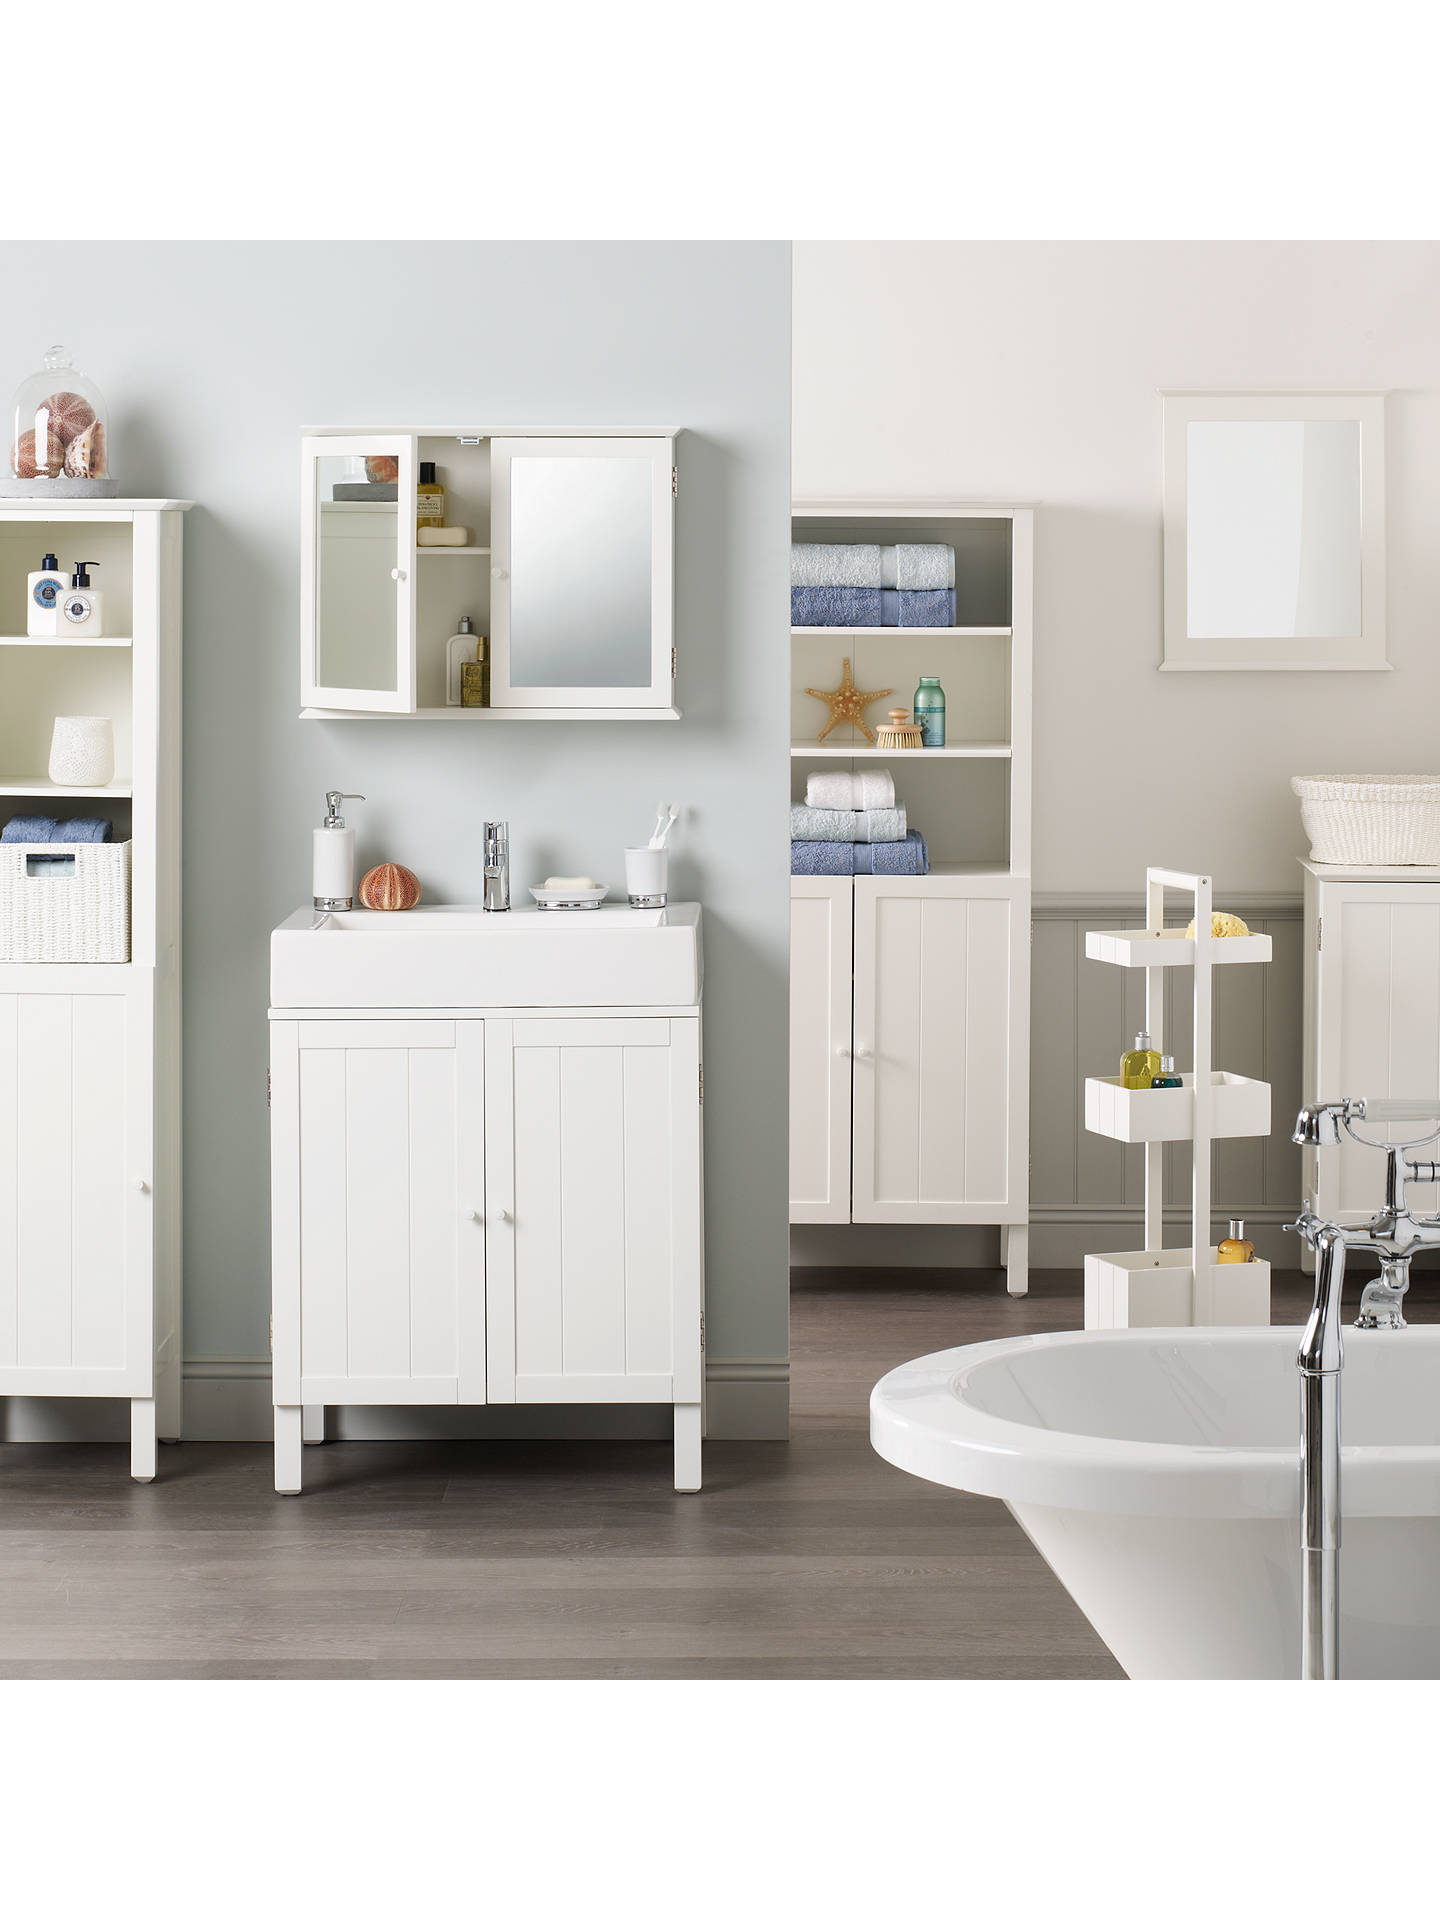 John Lewis & Partners St Ives Double Mirrored Bathroom Cabinet